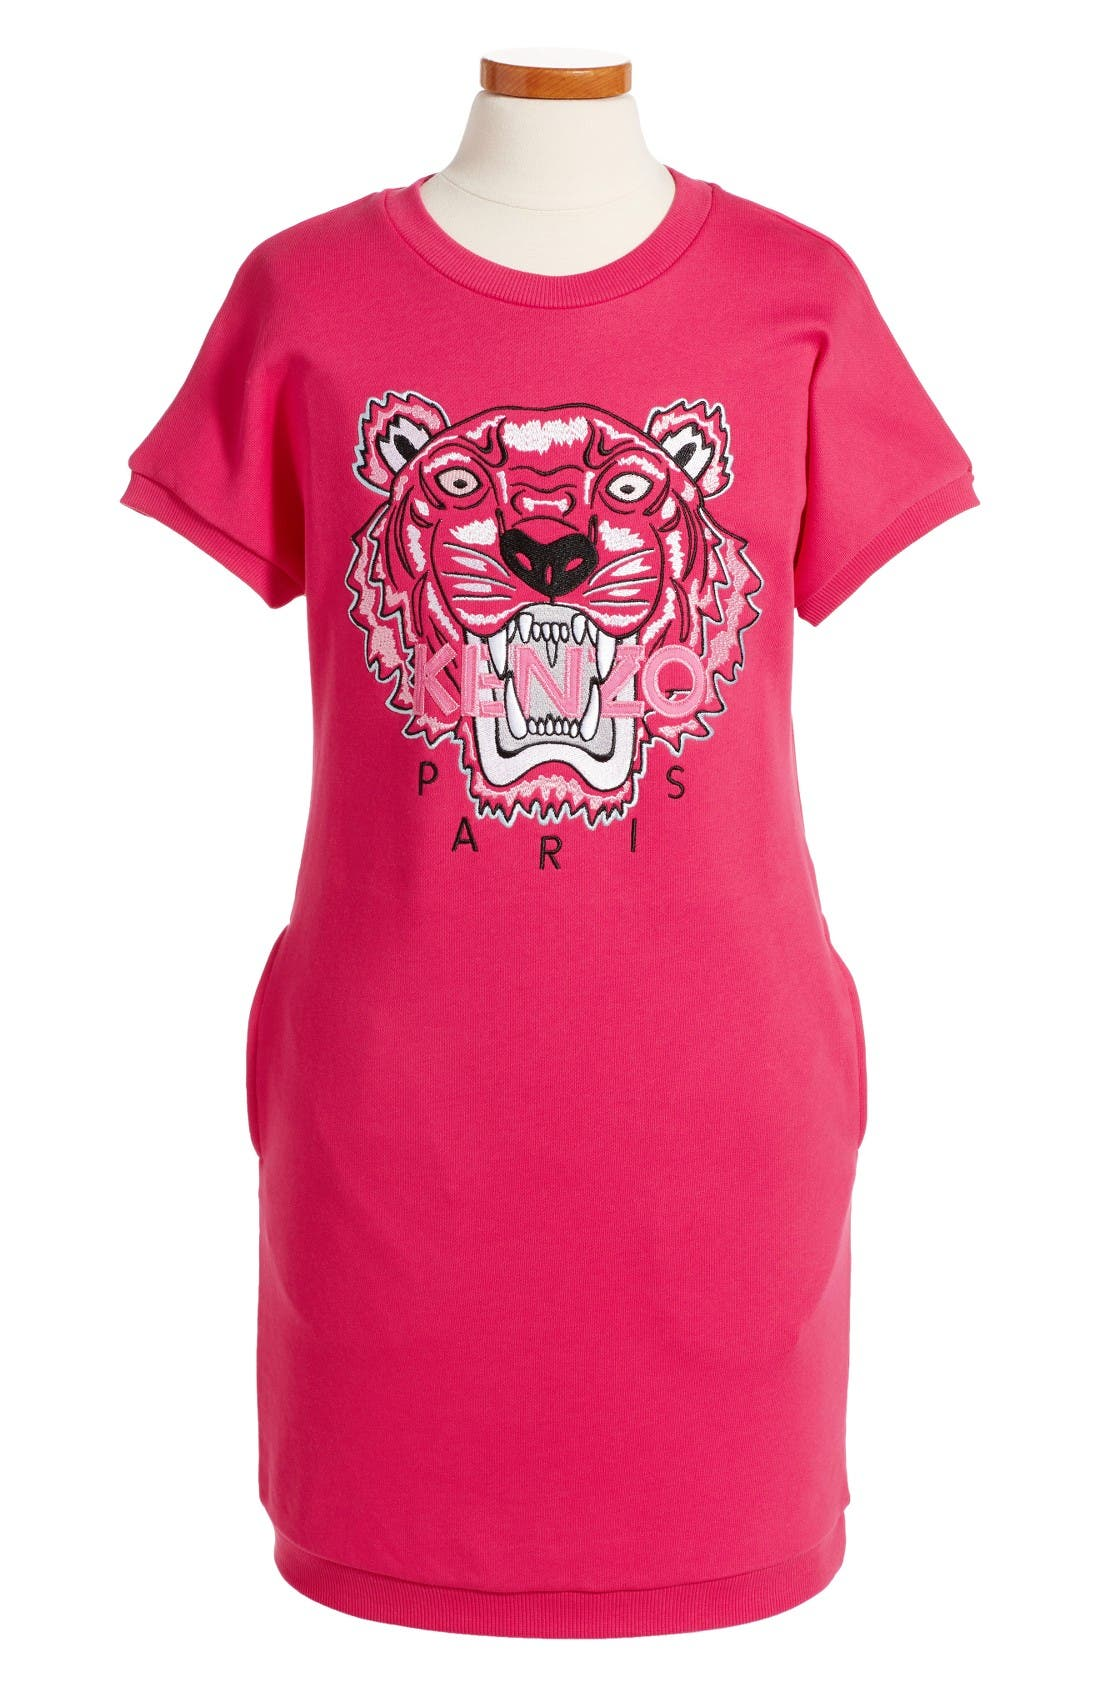 Embroidered Tiger Sweatshirt Dress,                         Main,                         color, Fuchsia